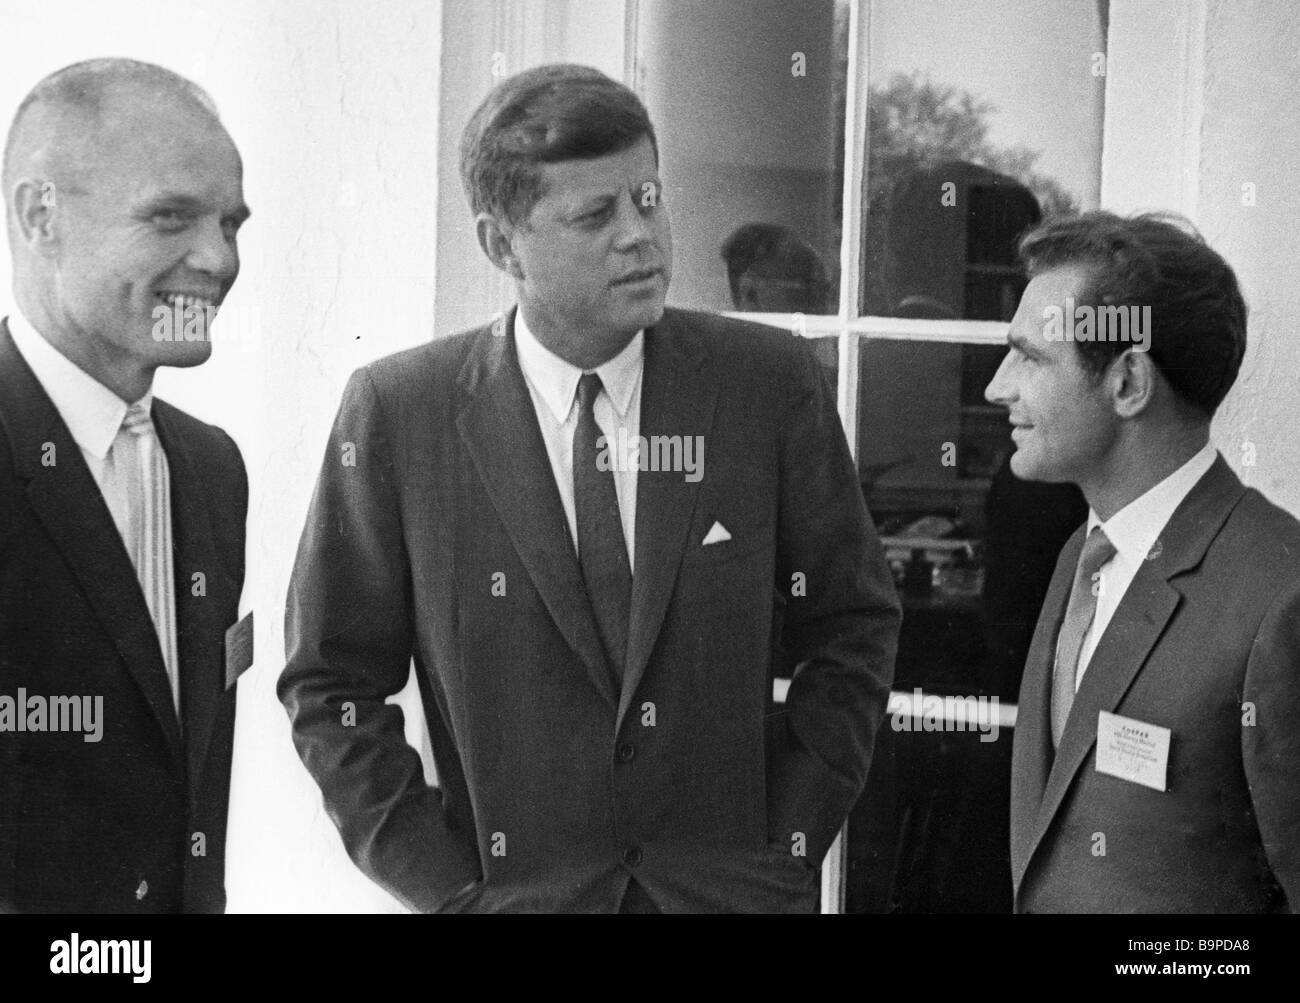 an analysis of the accounts of john f kennedy in vietnam